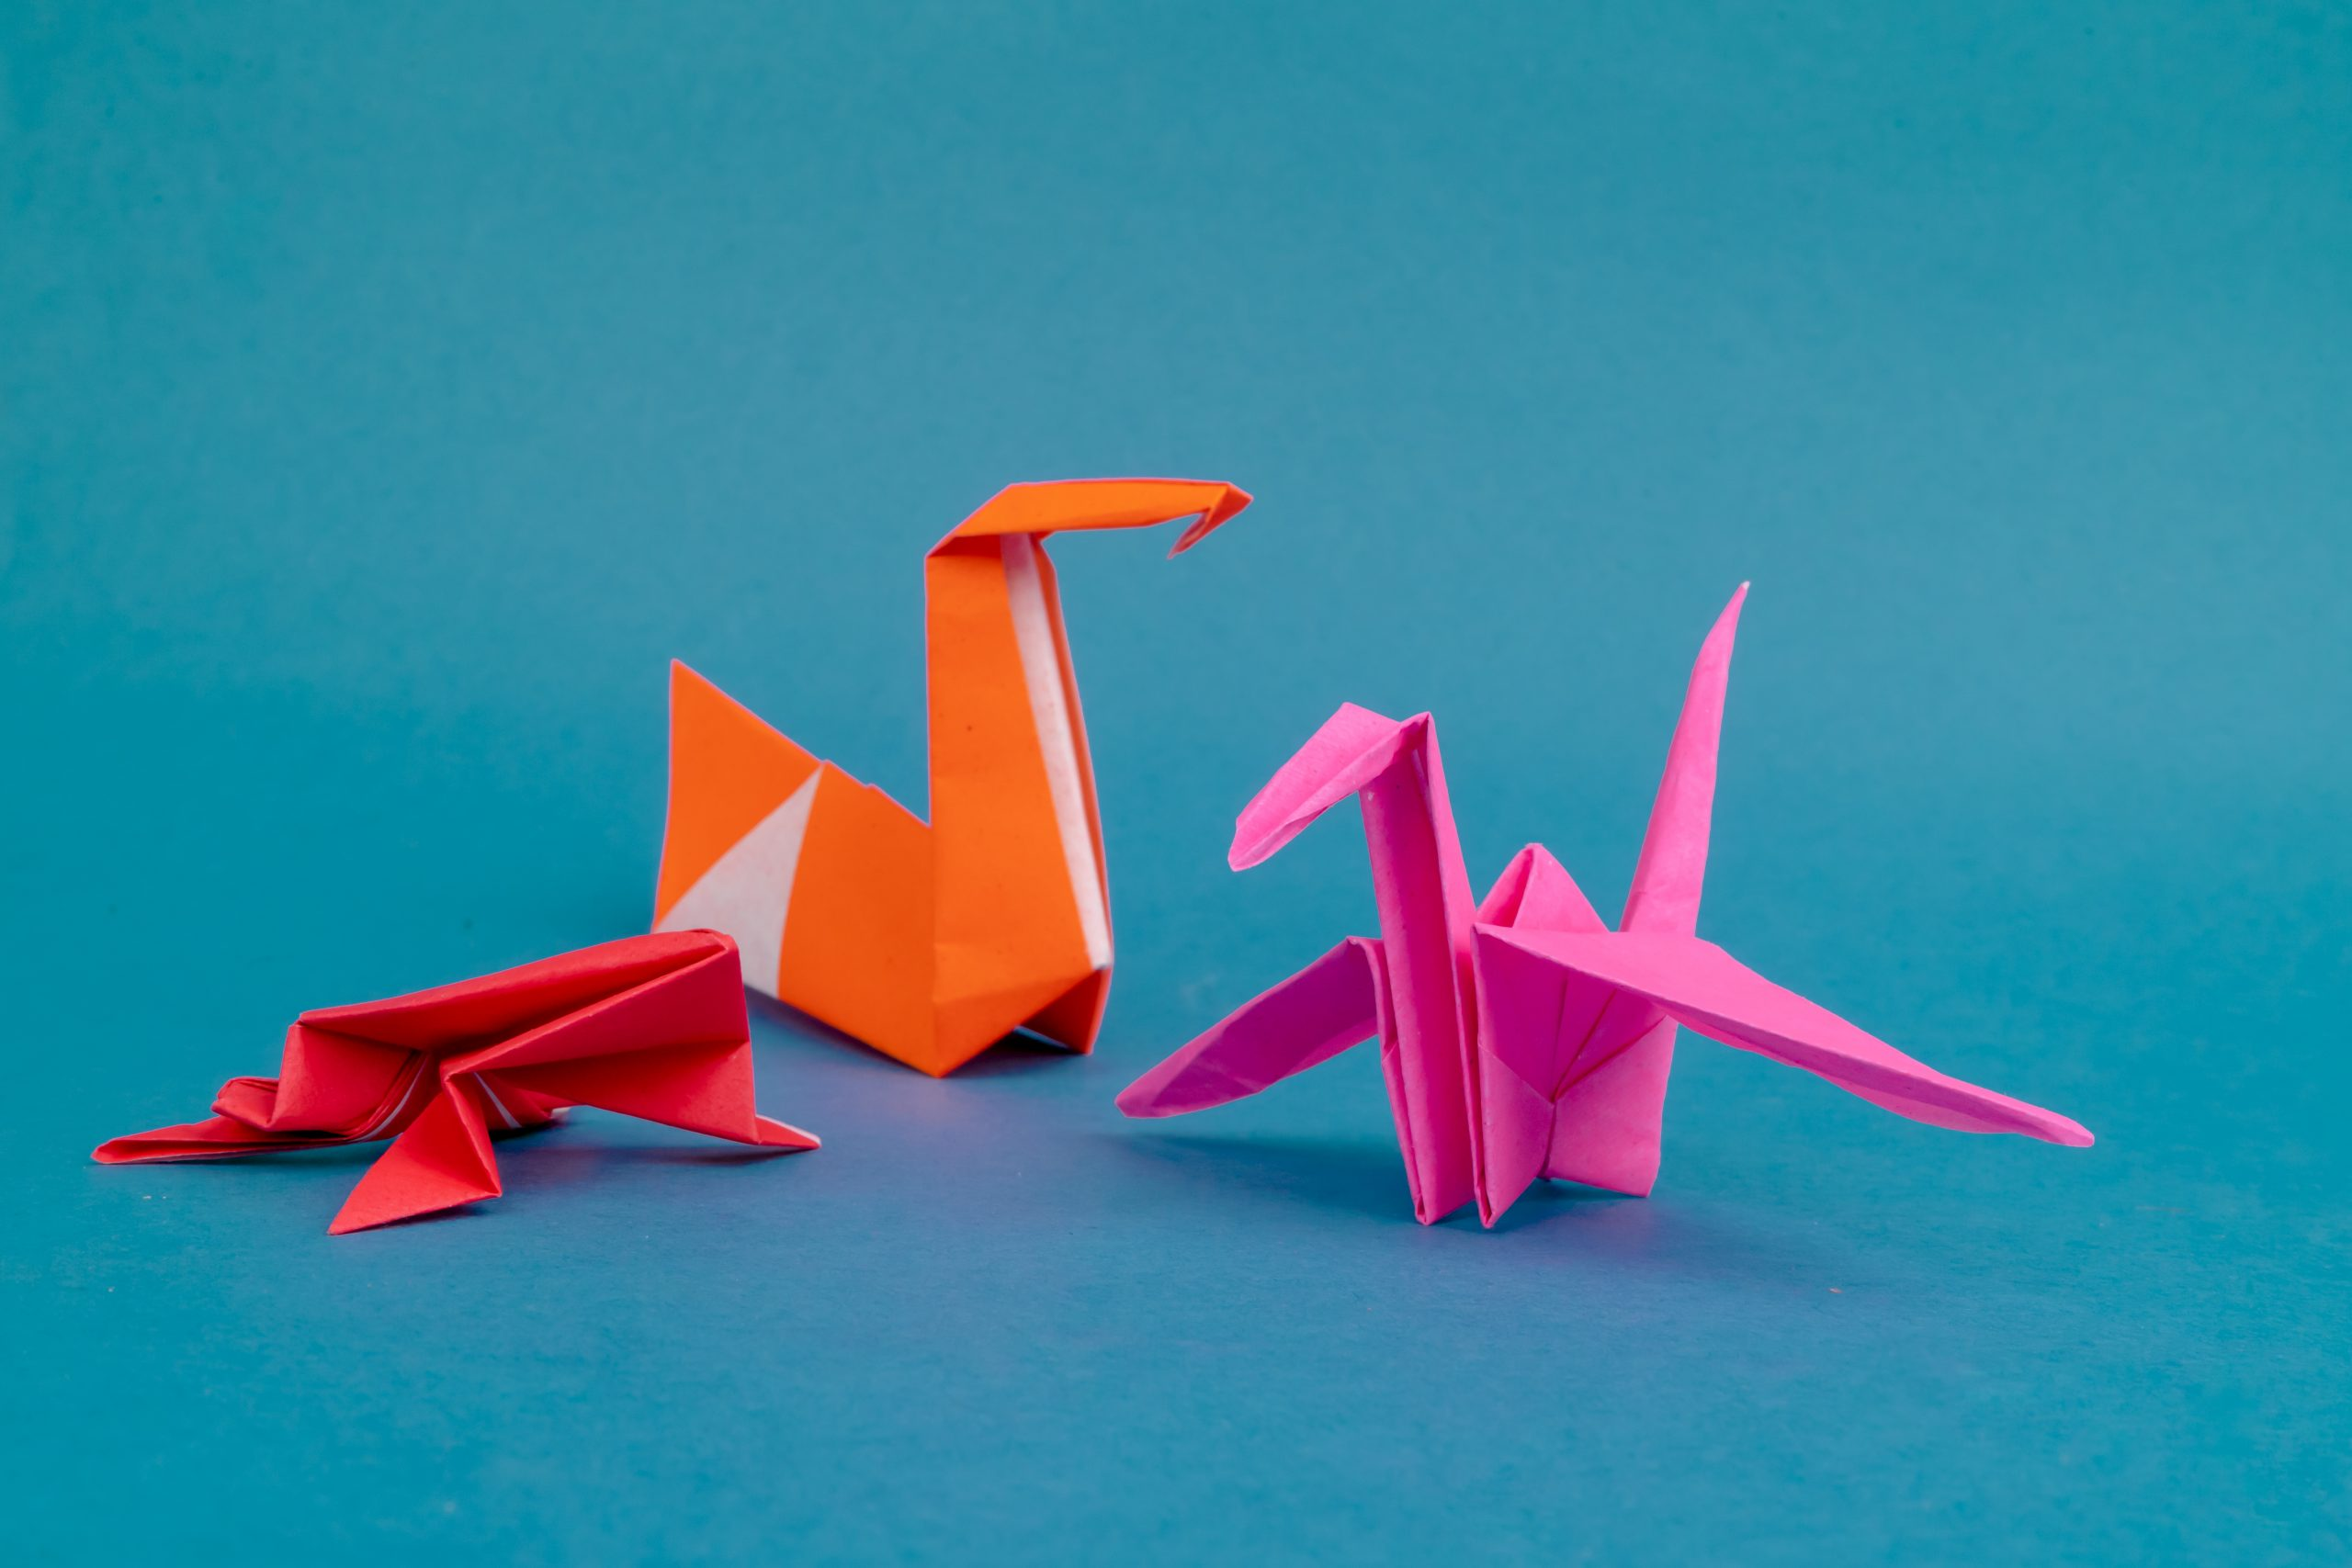 Frog, swan and crane origami